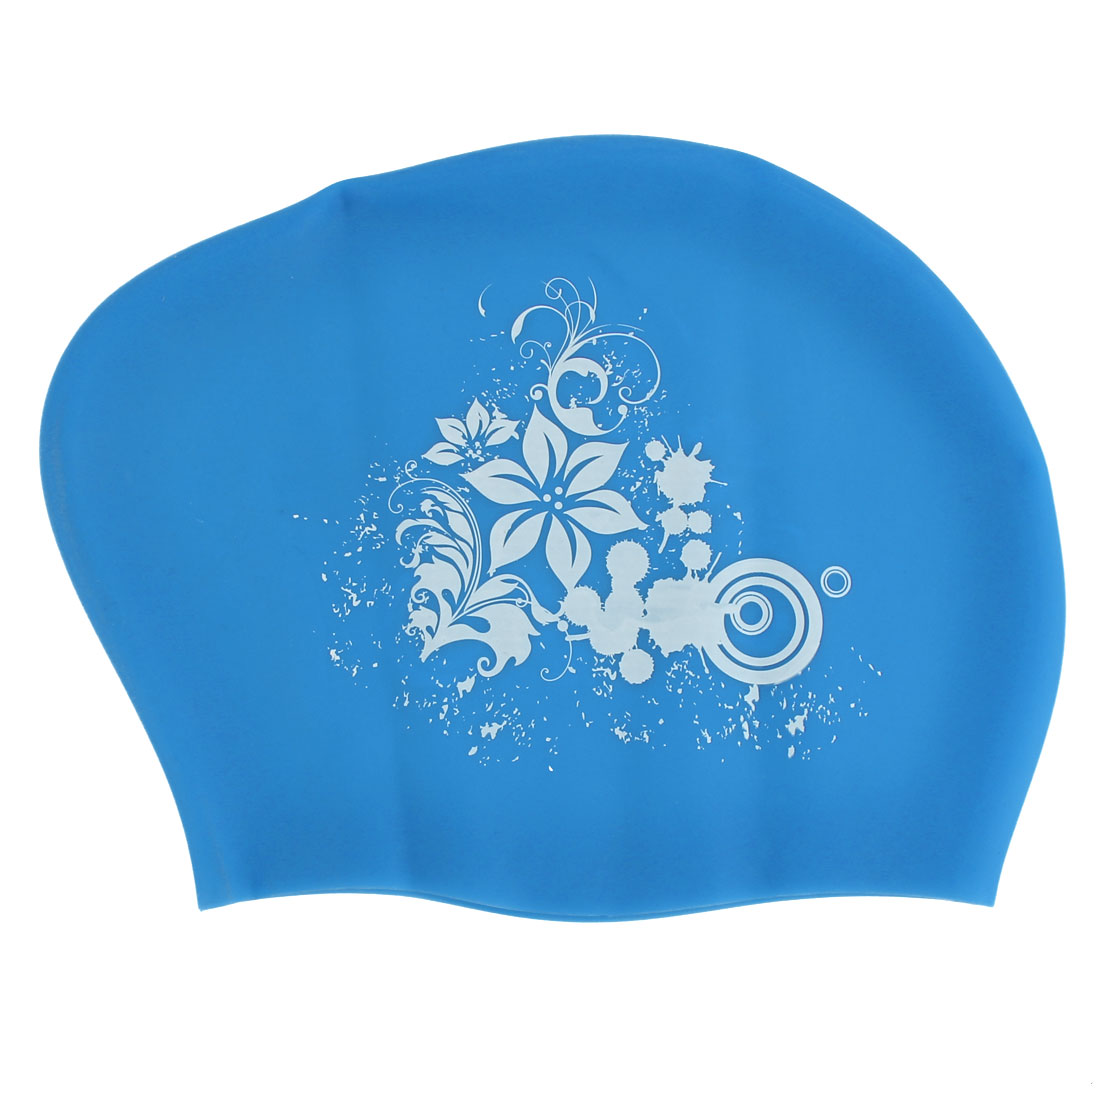 Women Silicone Flower Print Dome Shaped Water Resistant Swimming Cap Light Blue